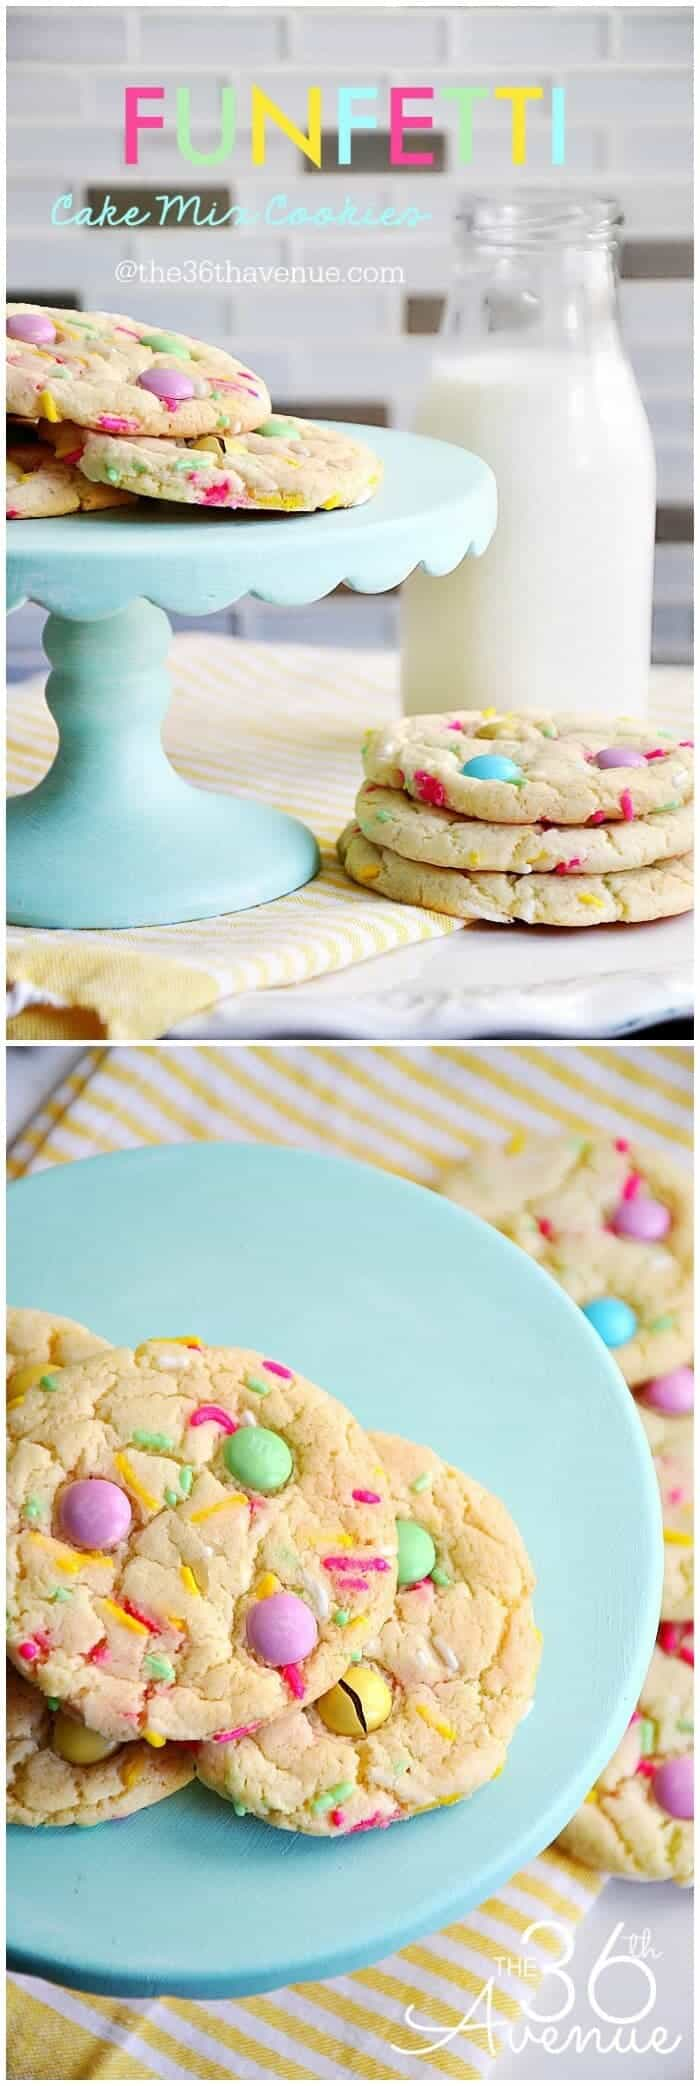 Funfetti Cake Mix Cookies by The 36th Avenue | The best cake mix hacks and recipes on Pinterest! They are all so quick, so easy and so delicious!